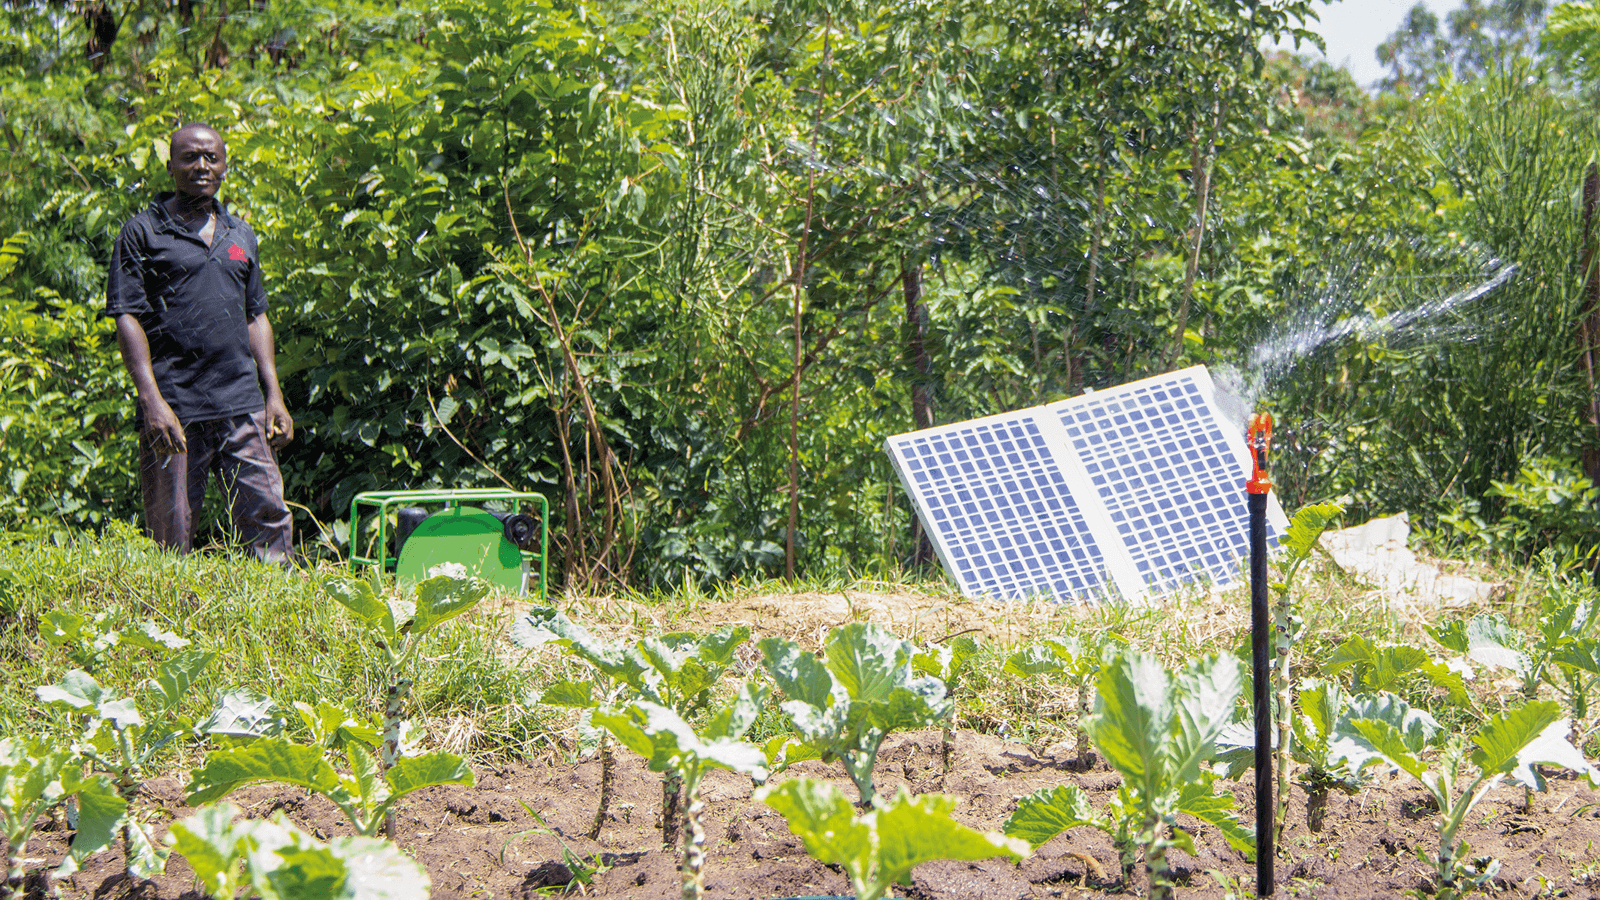 Farmer switched of SF2 solar pump to power spinklers